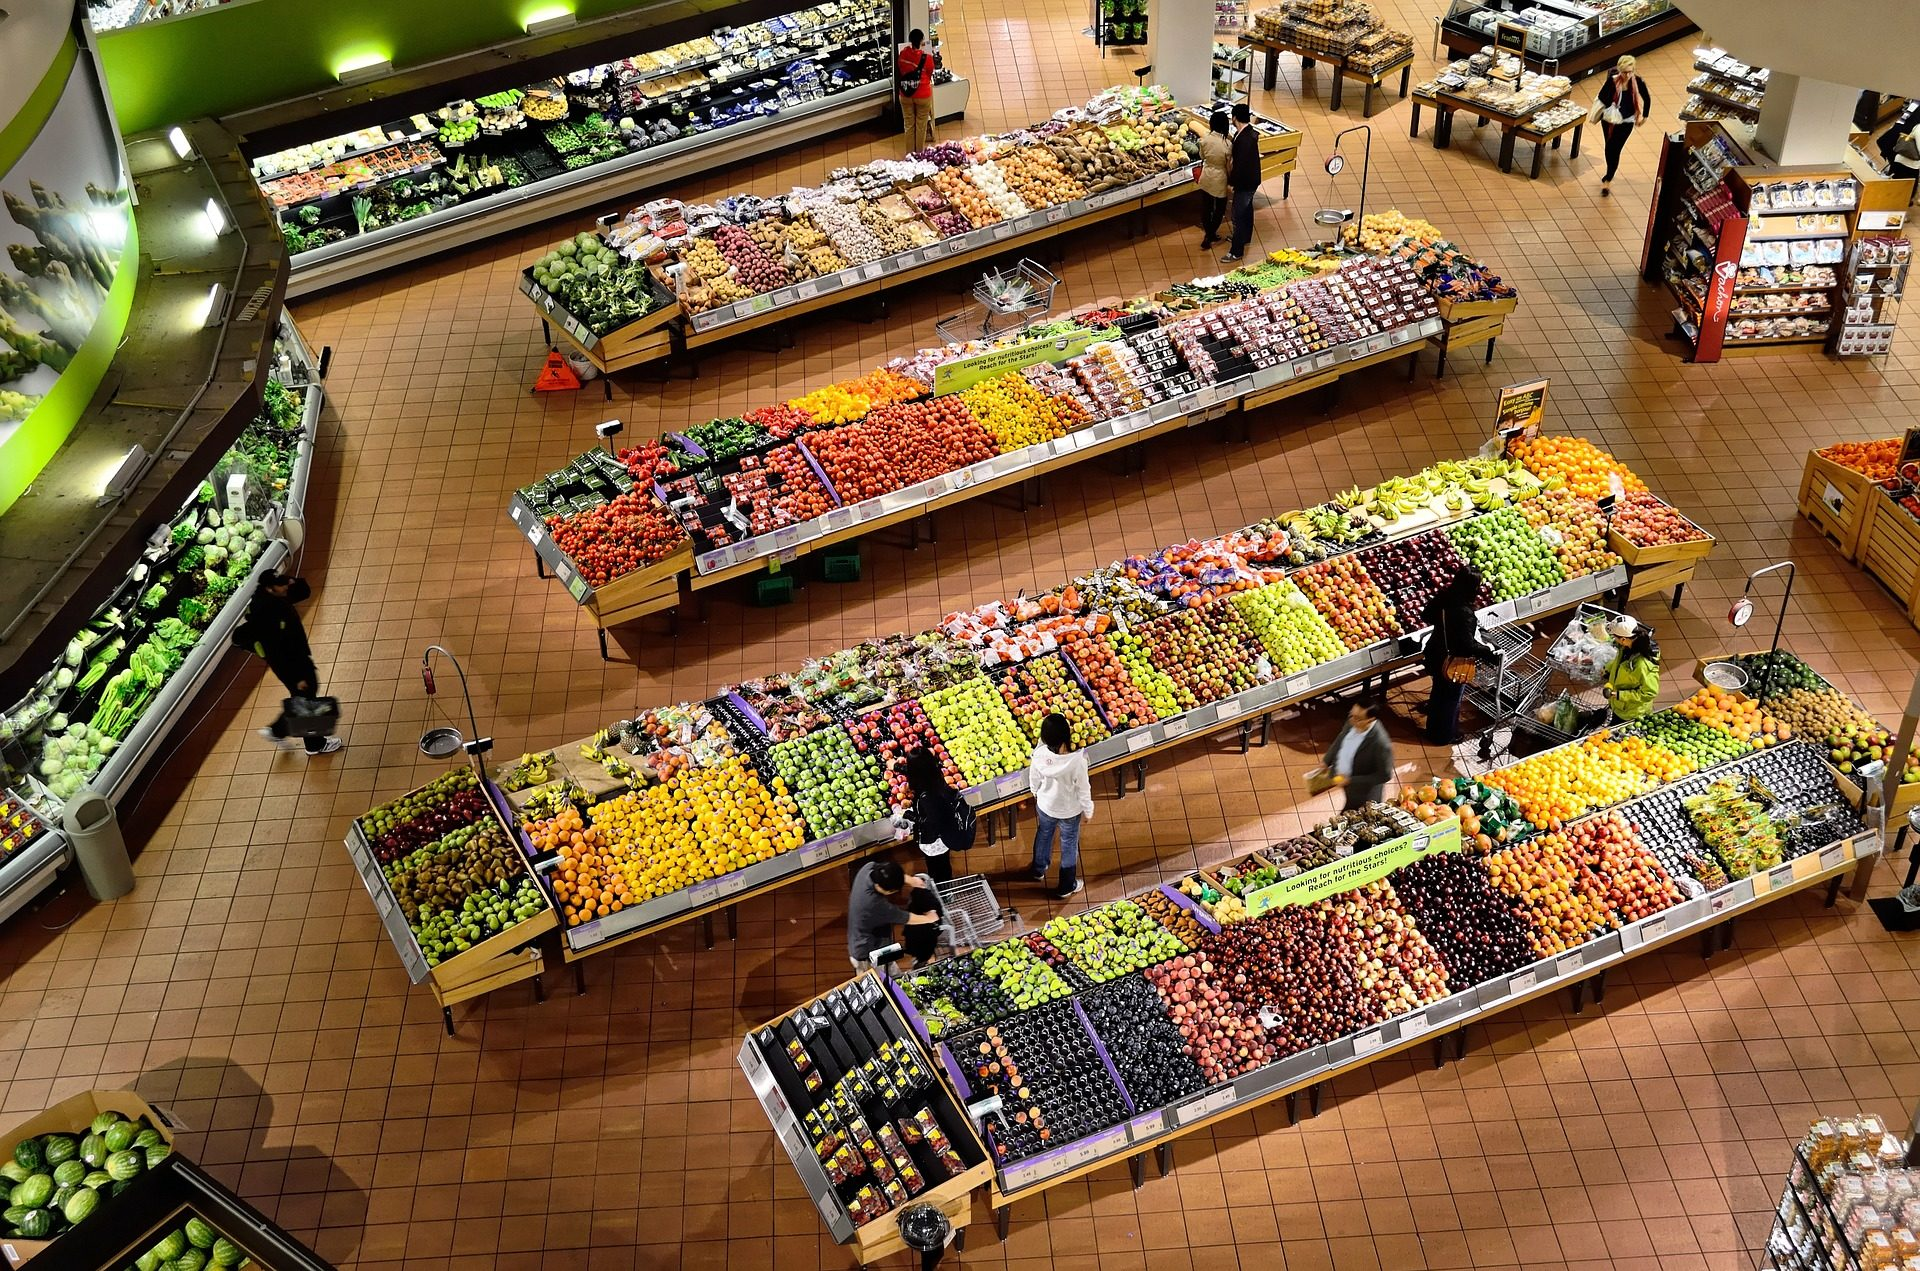 5 Reasons to Love Produce Managers